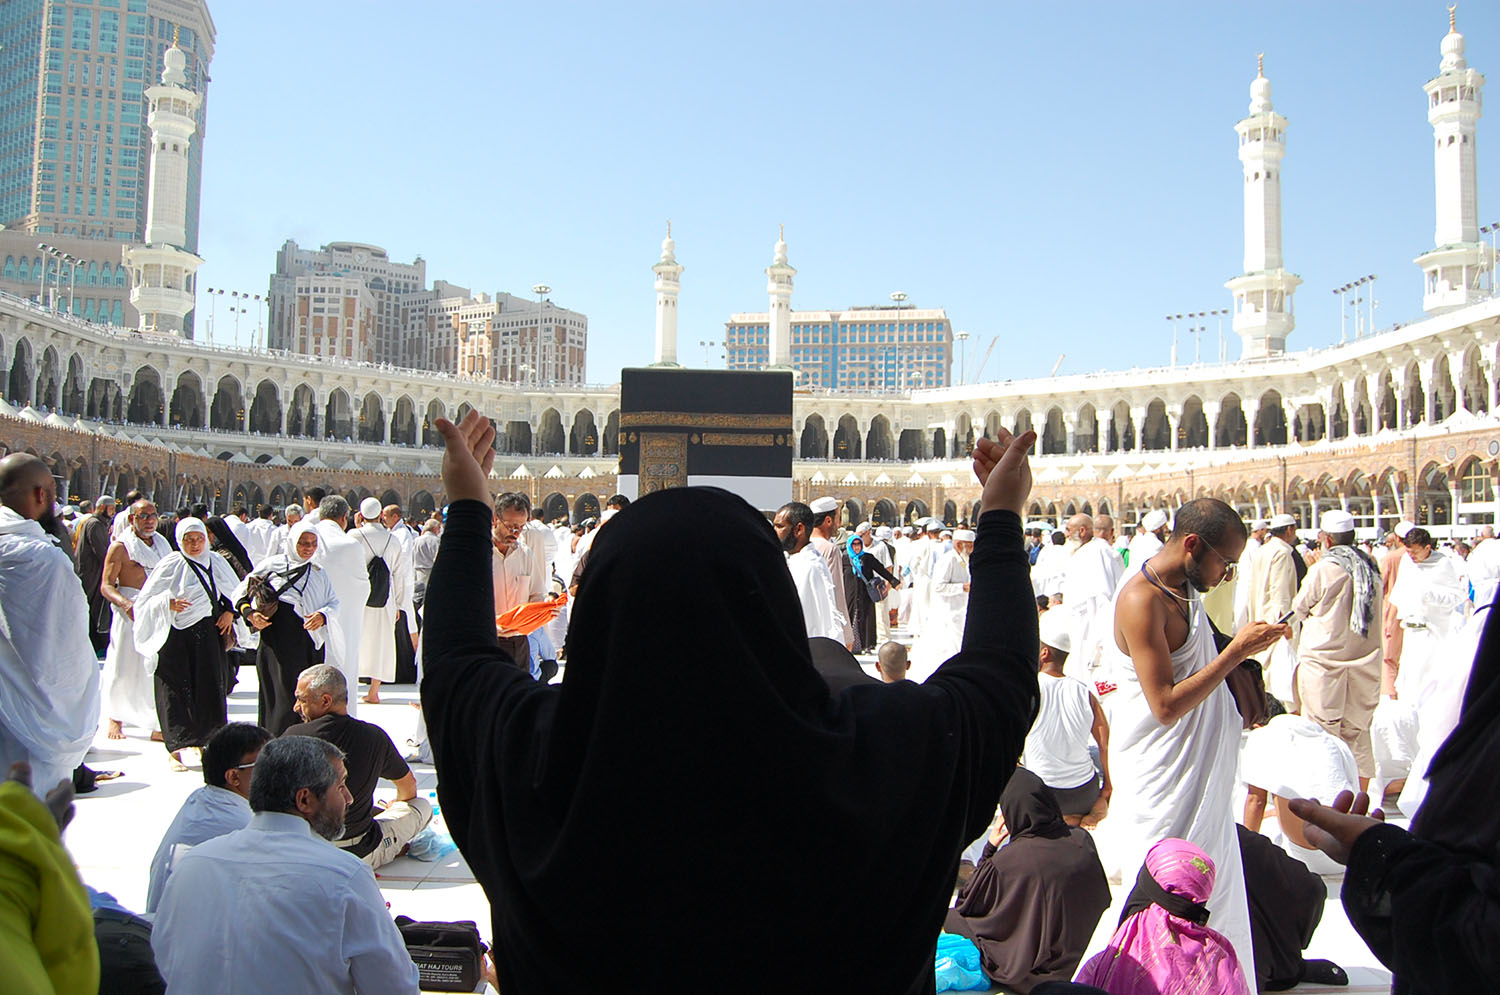 Our Hajj | The Saudi Arabia they don't want you to see - A